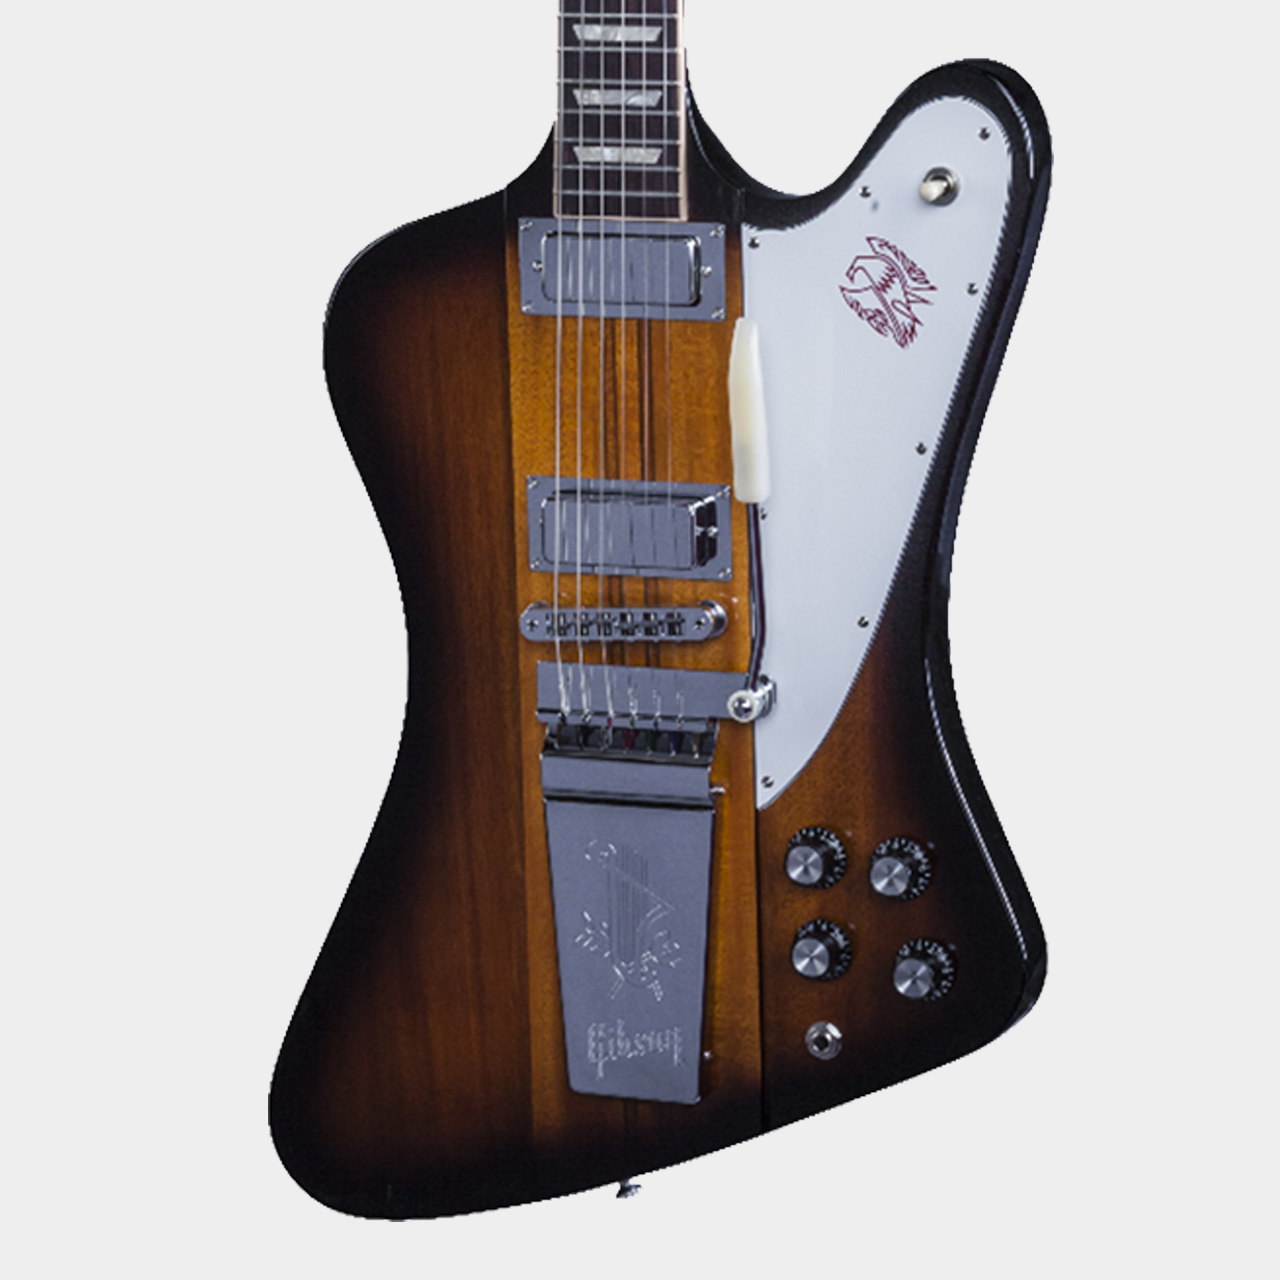 GIBSON Firebird Lyra Tail Vibrola Limited 2016 Vintage Sunburst Body Detail